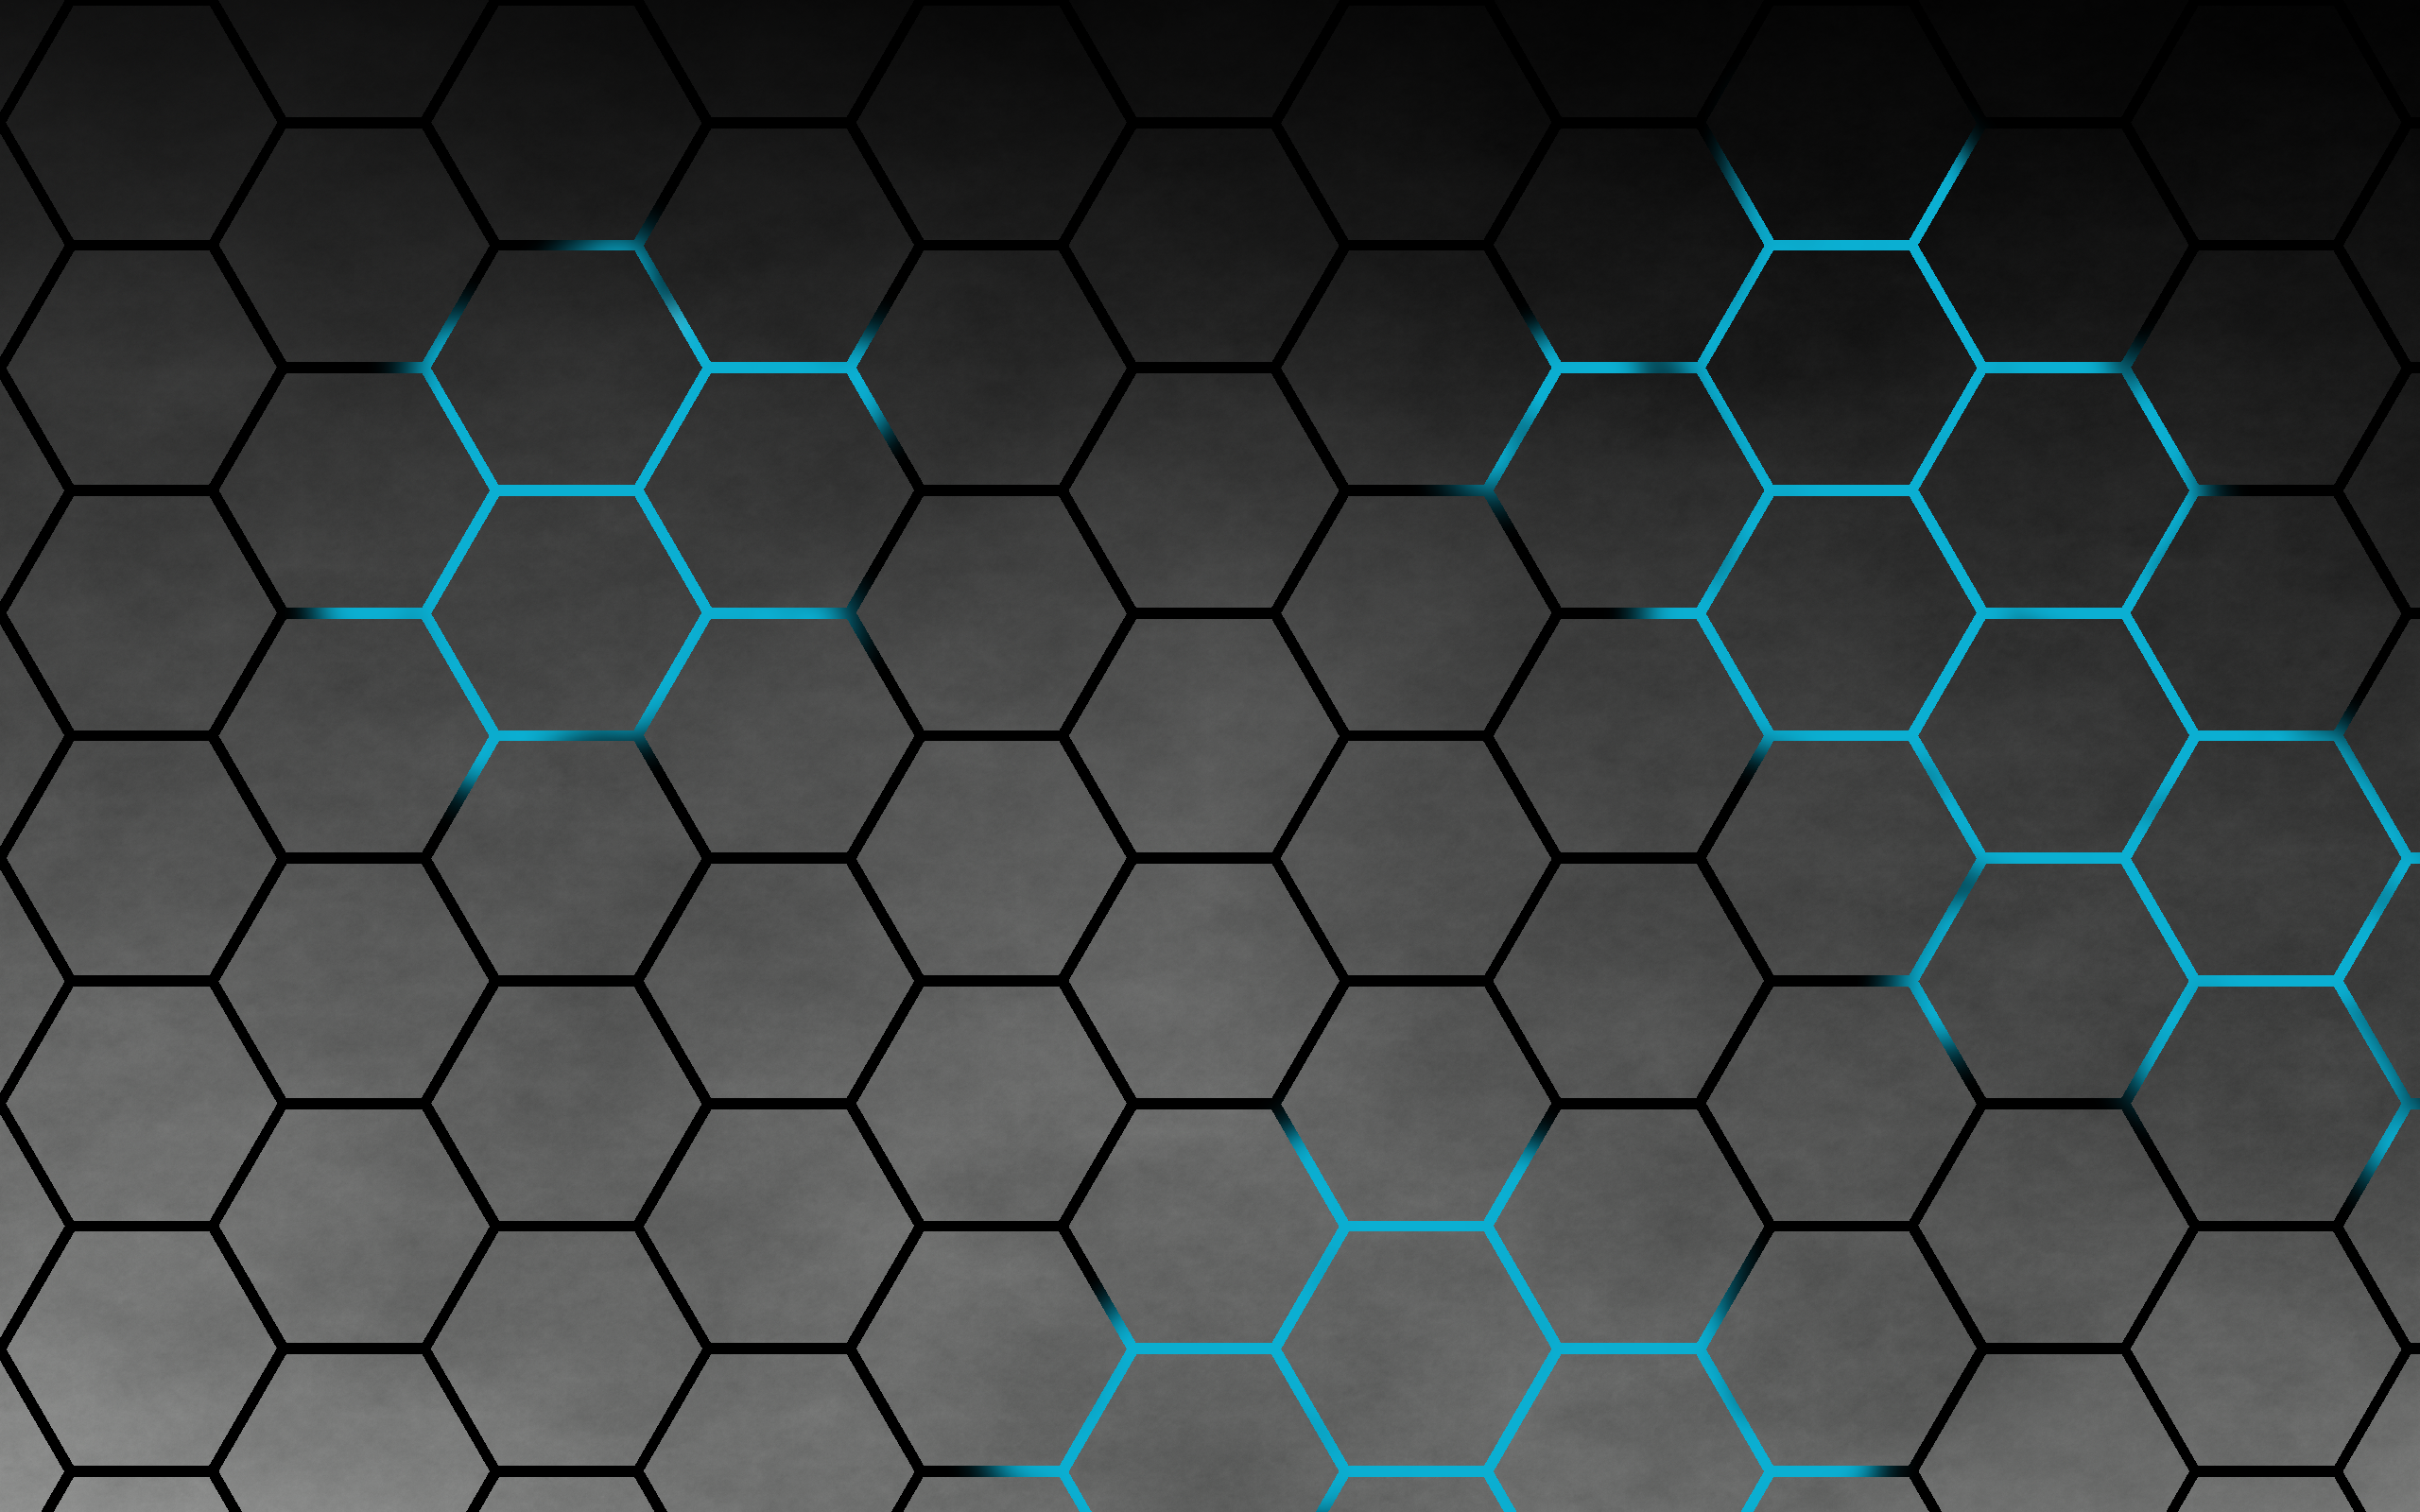 2 honeycomb hd wallpapers background images wallpaper abyss hd wallpaper background image id380565 2560x1600 pattern honeycomb voltagebd Image collections